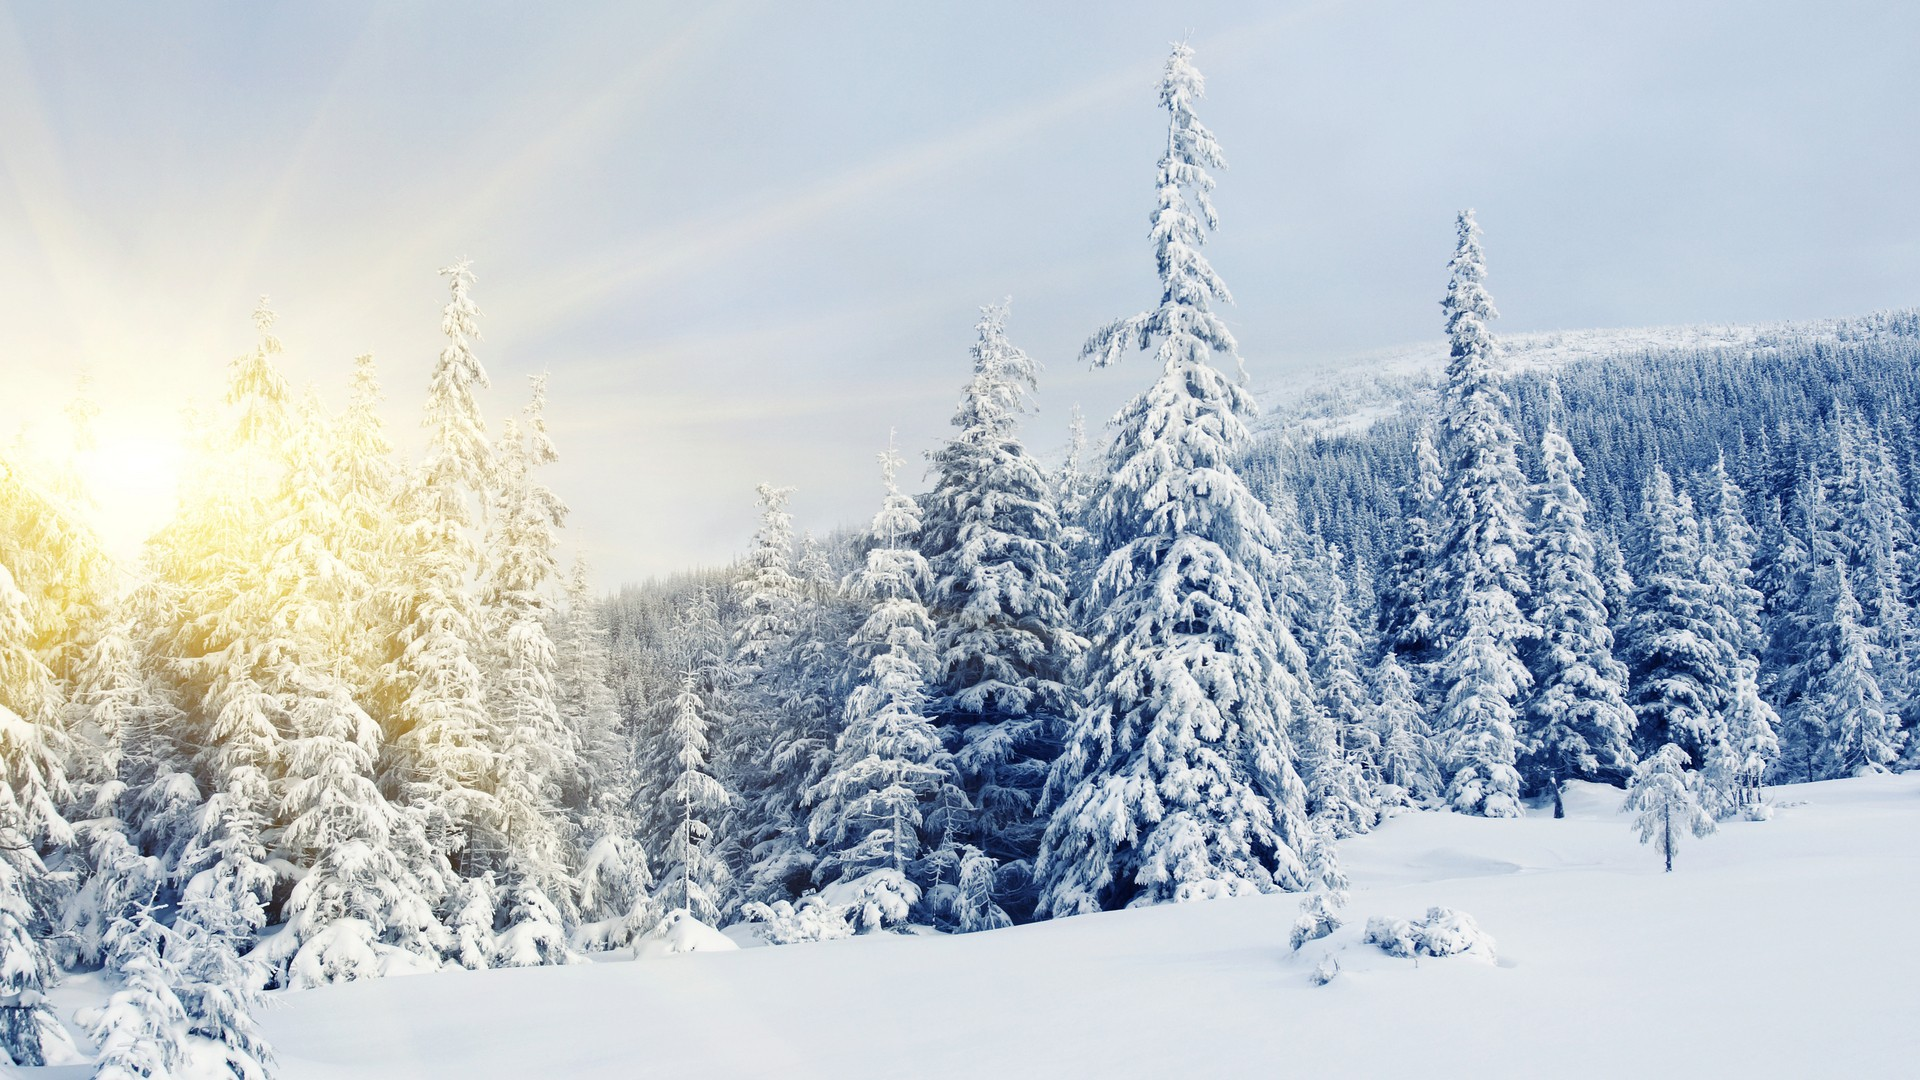 Winter snow covered trees wallpapers and images   wallpapers pictures 1920x1080